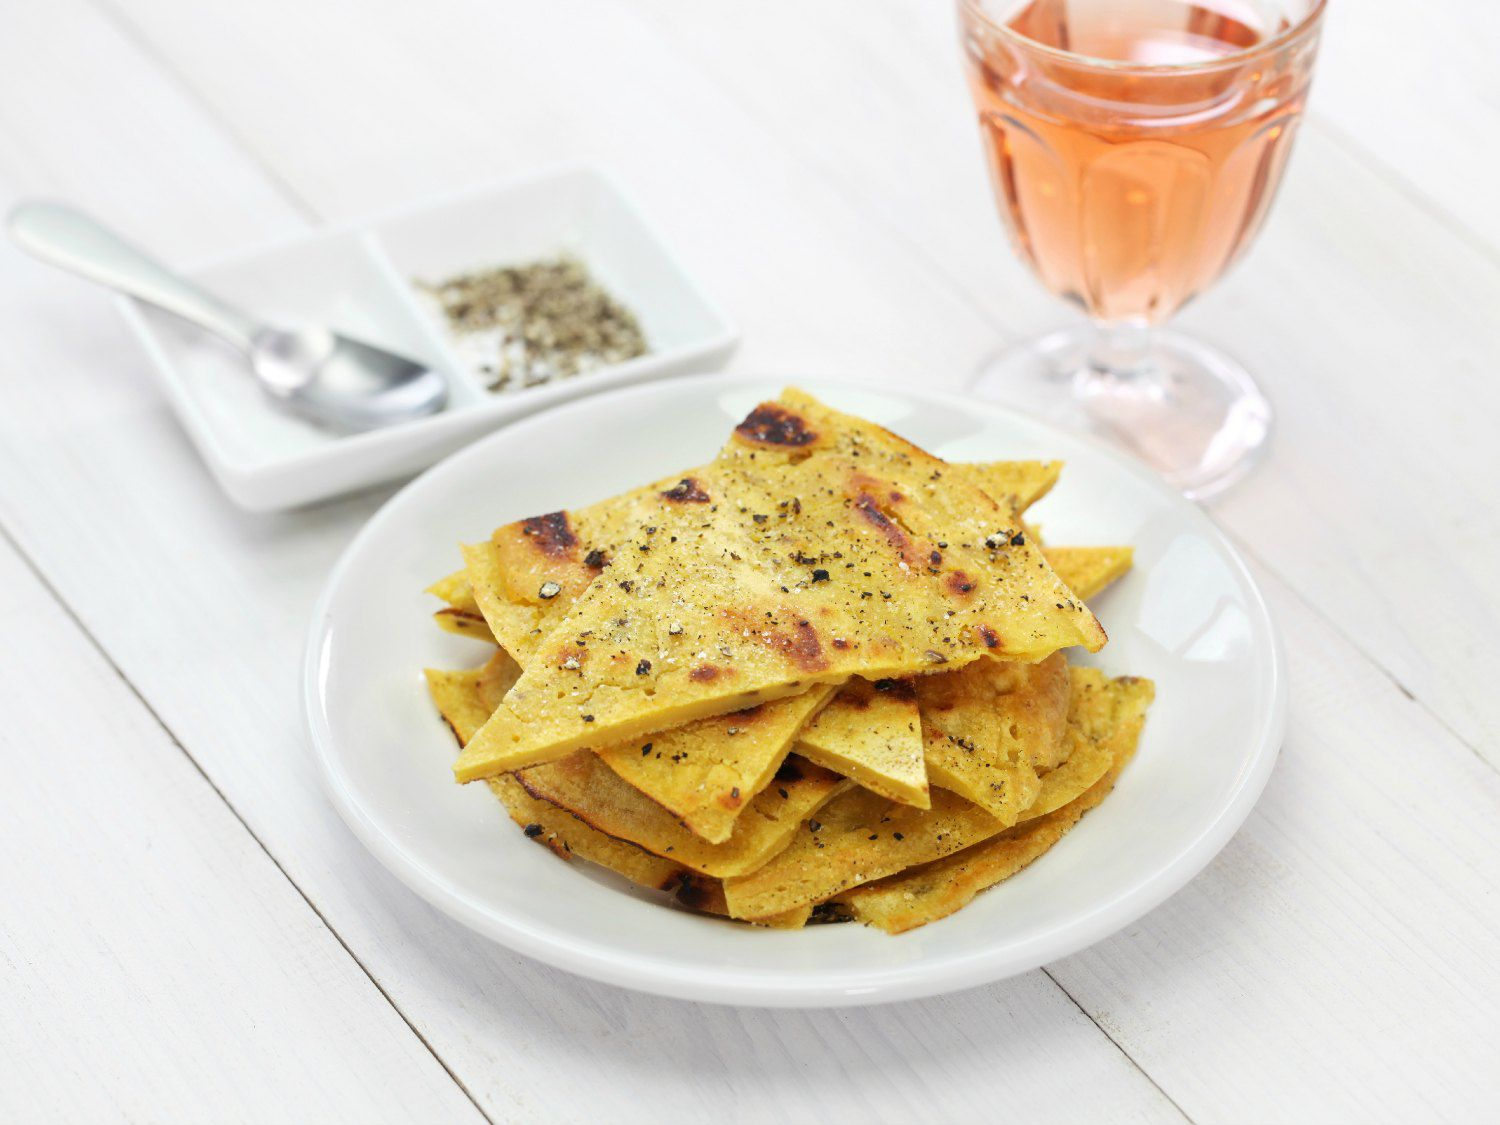 Wedges of socca, a farinata pancake, on a small white plate with a glass of rose wine next to it.